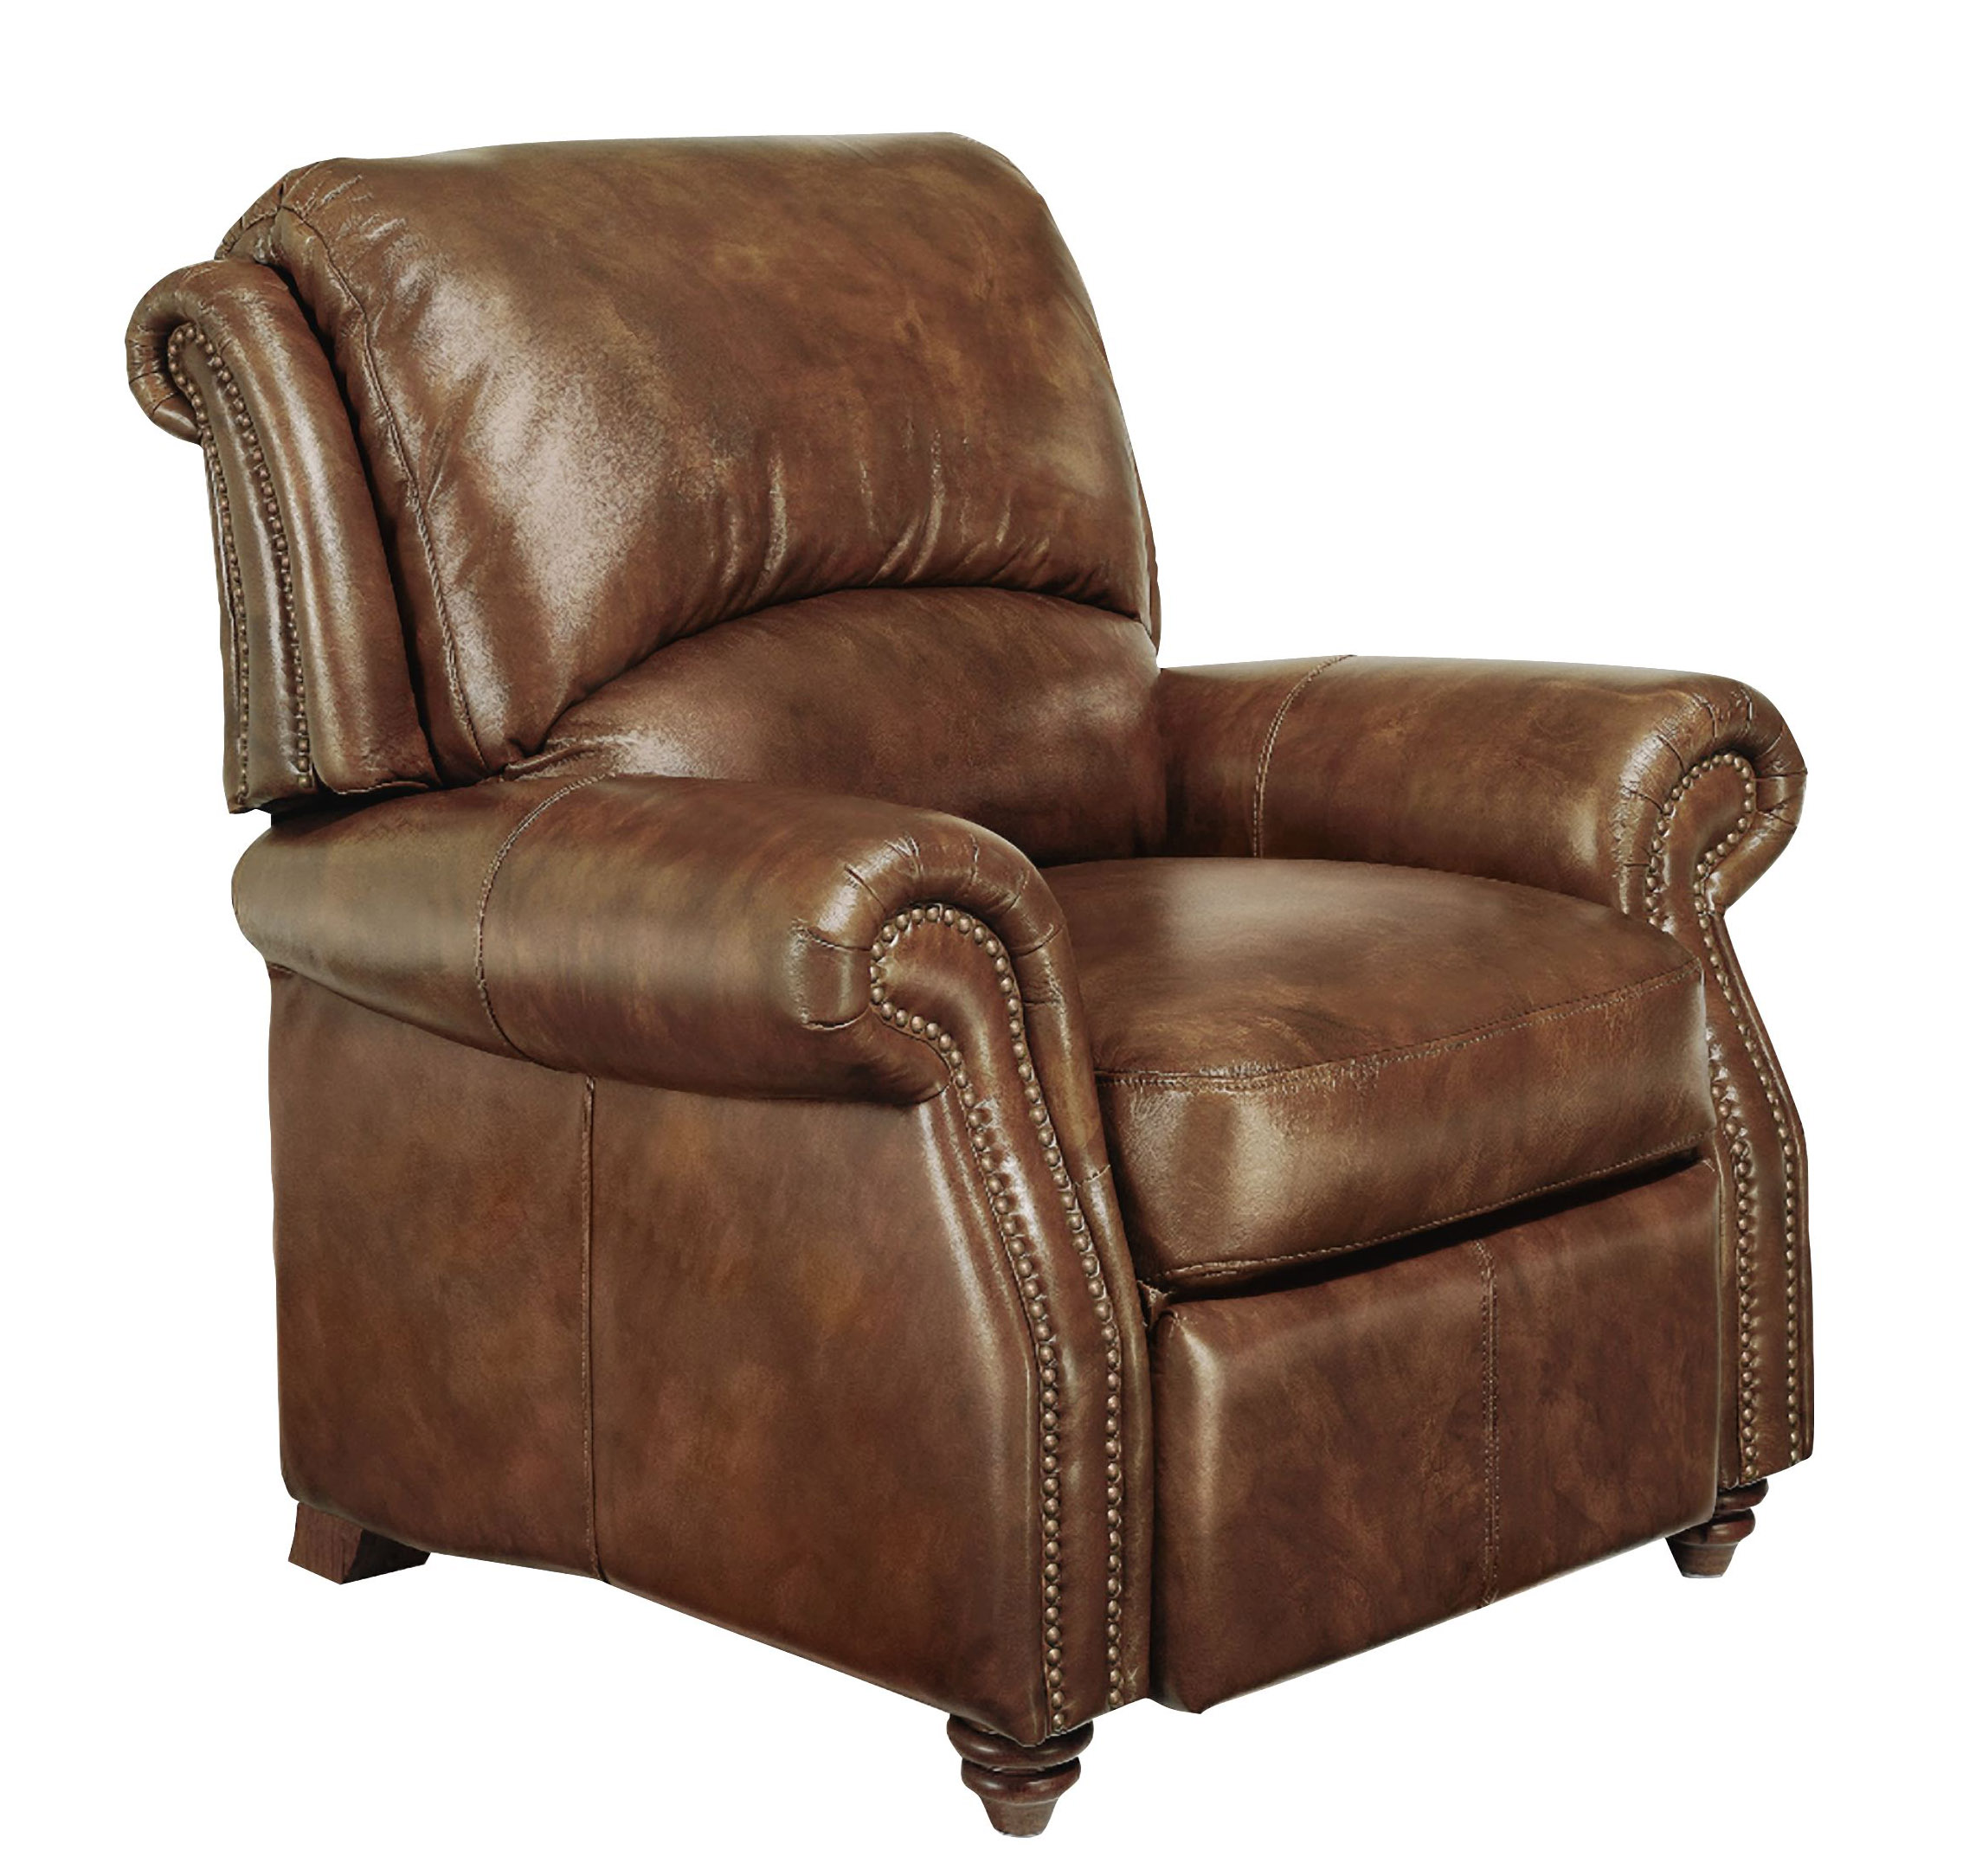 Best Leather Chairs Traditional Genuine Top Grain Brown Leather Reclining Club